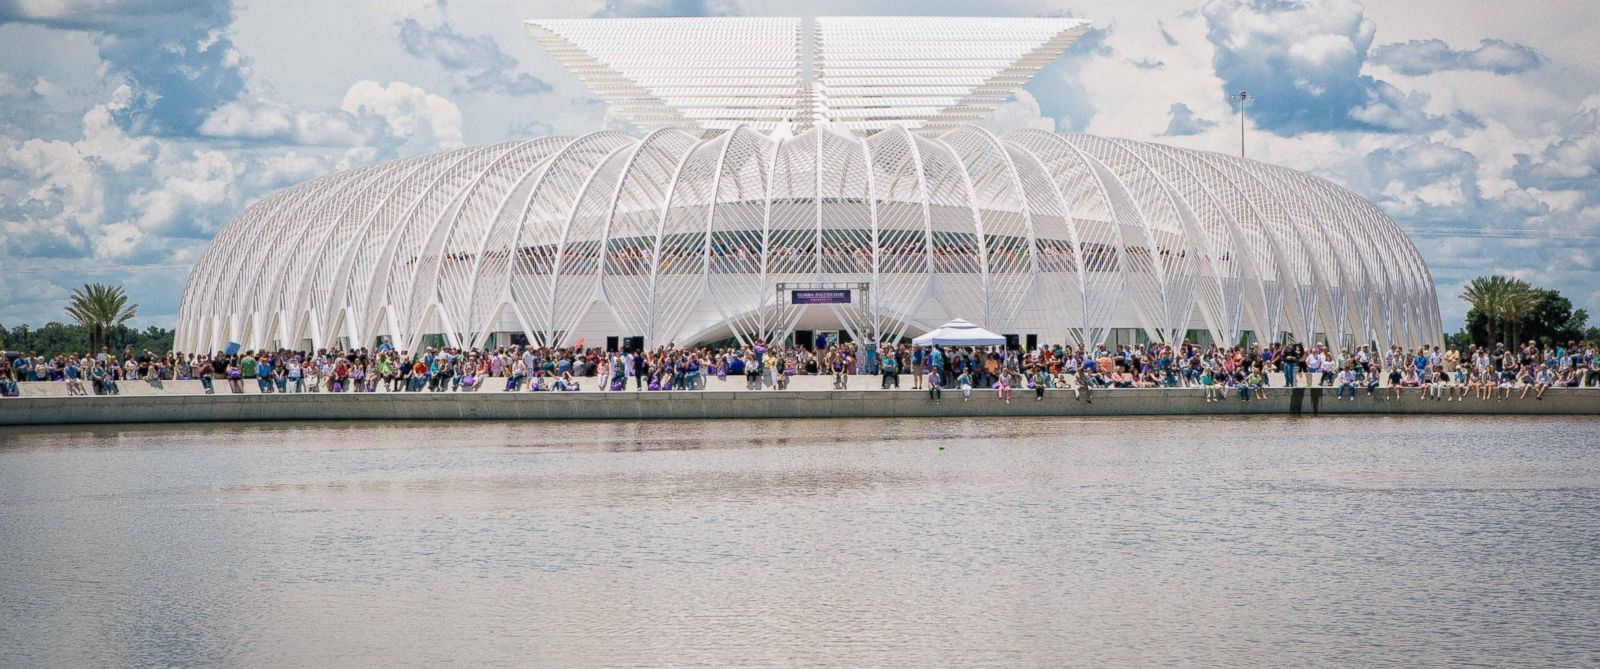 PHOTO: The Science and Technology building at Florida Polytechnic University.